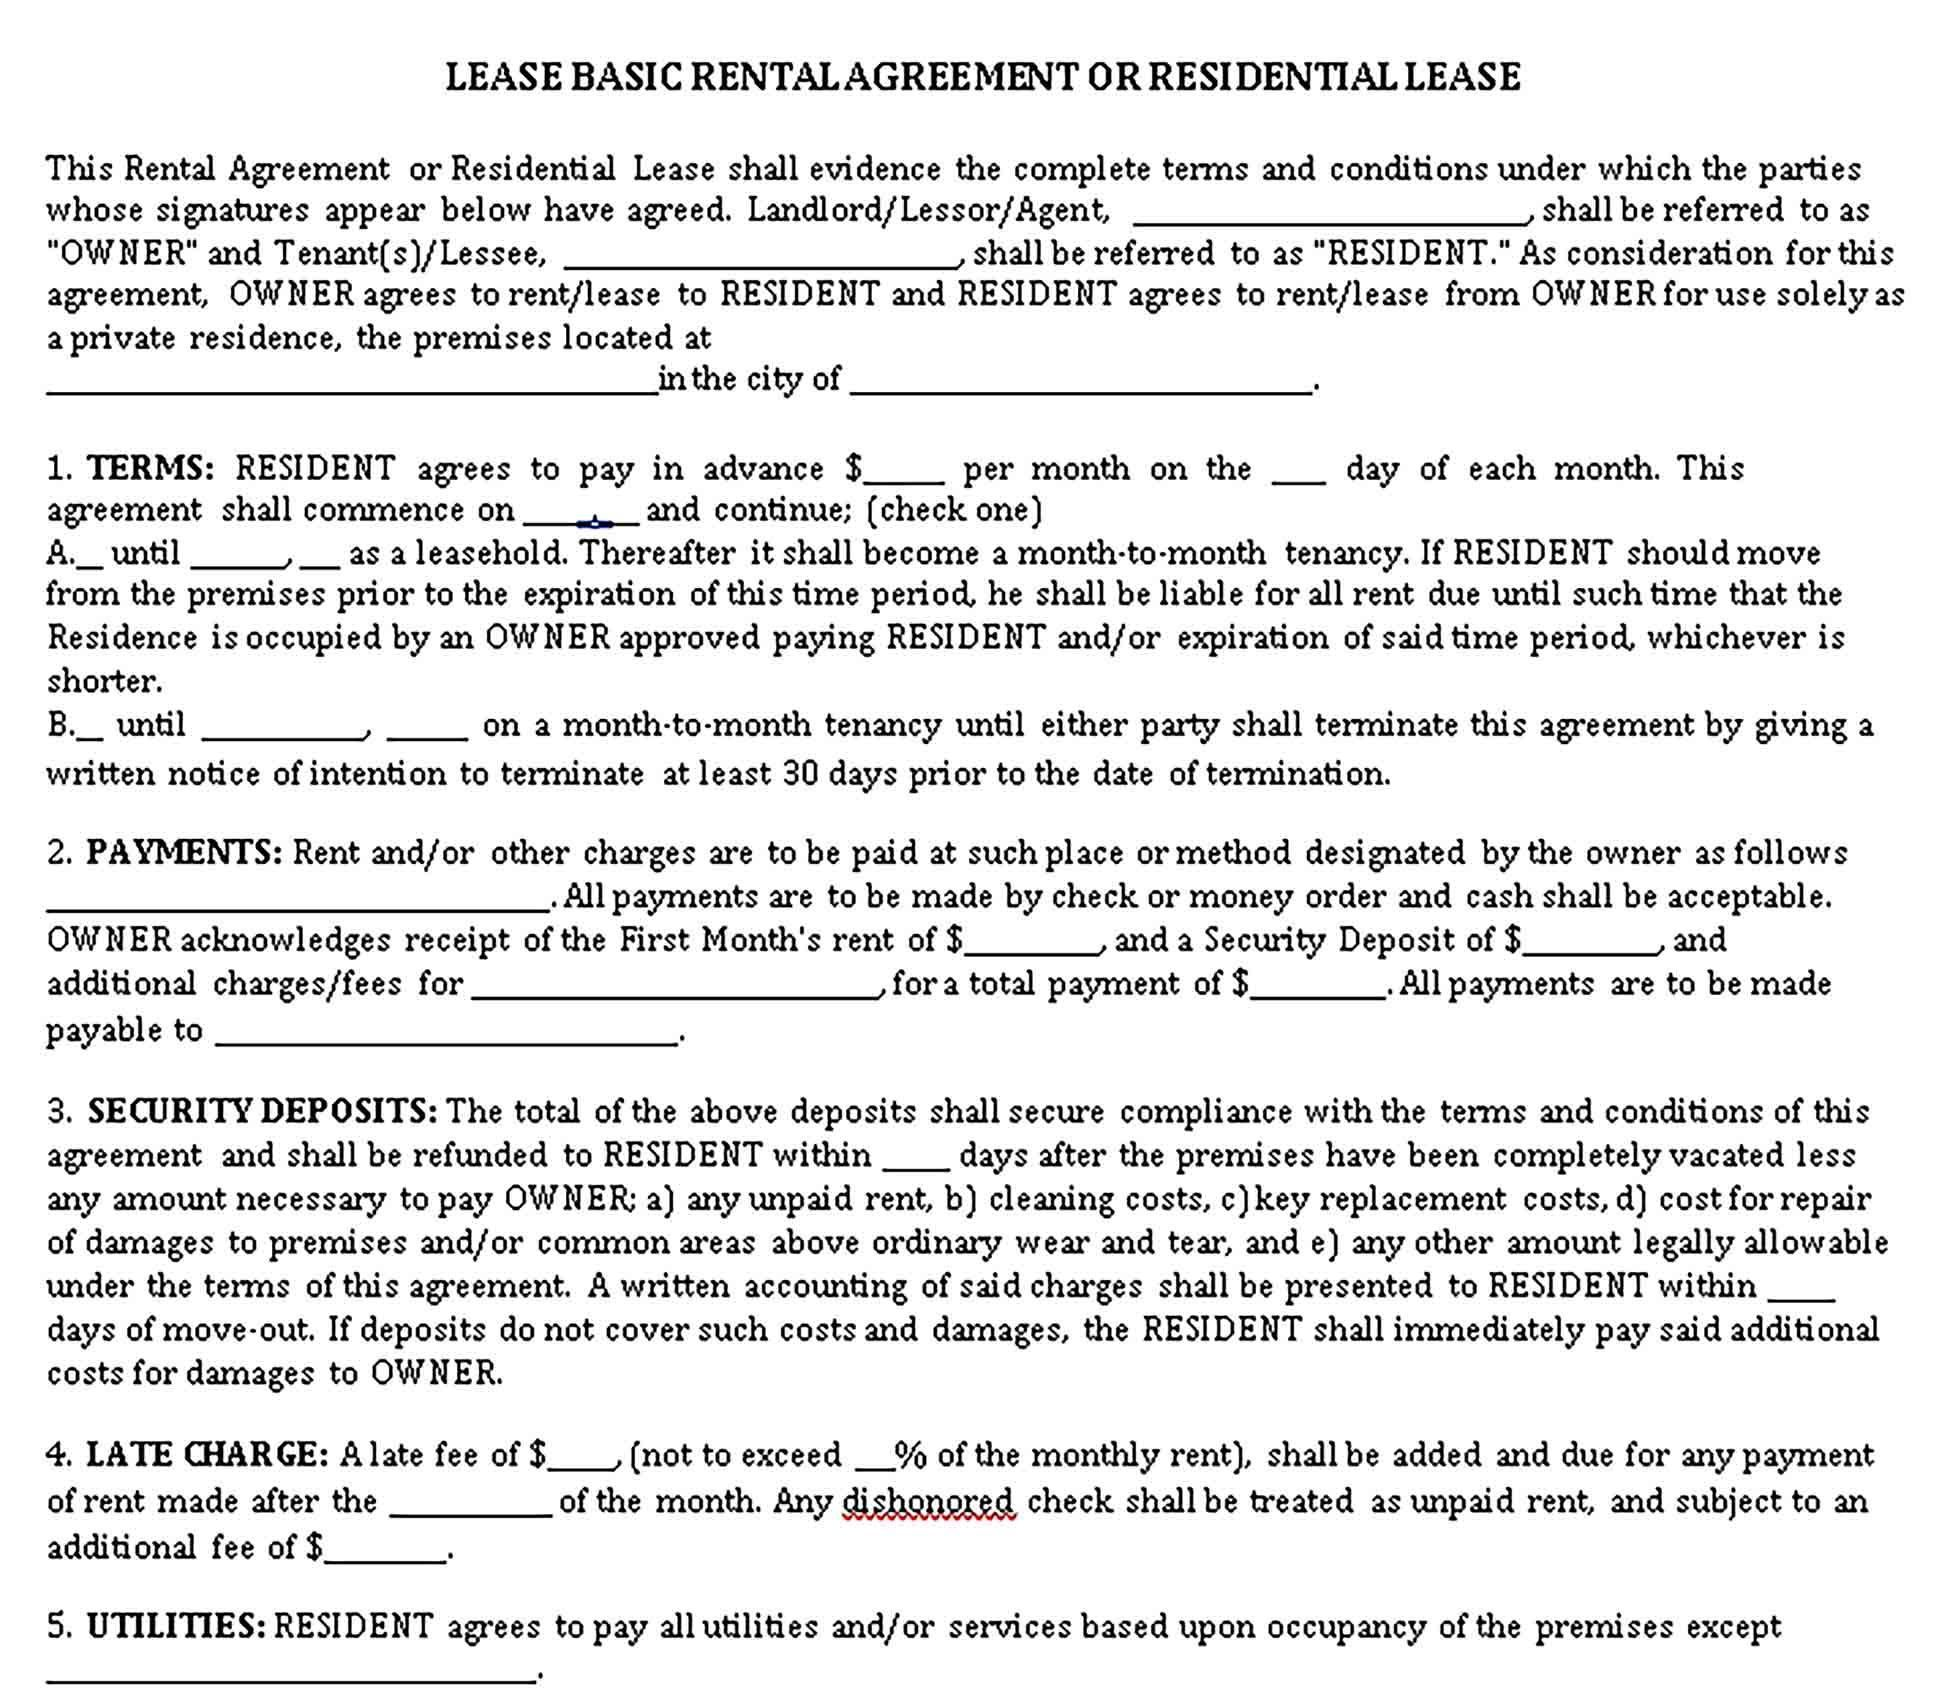 001 Fascinating Renter Lease Agreement Template Sample  Apartment Form Early Termination Of By Tenant South Africa FreeFull